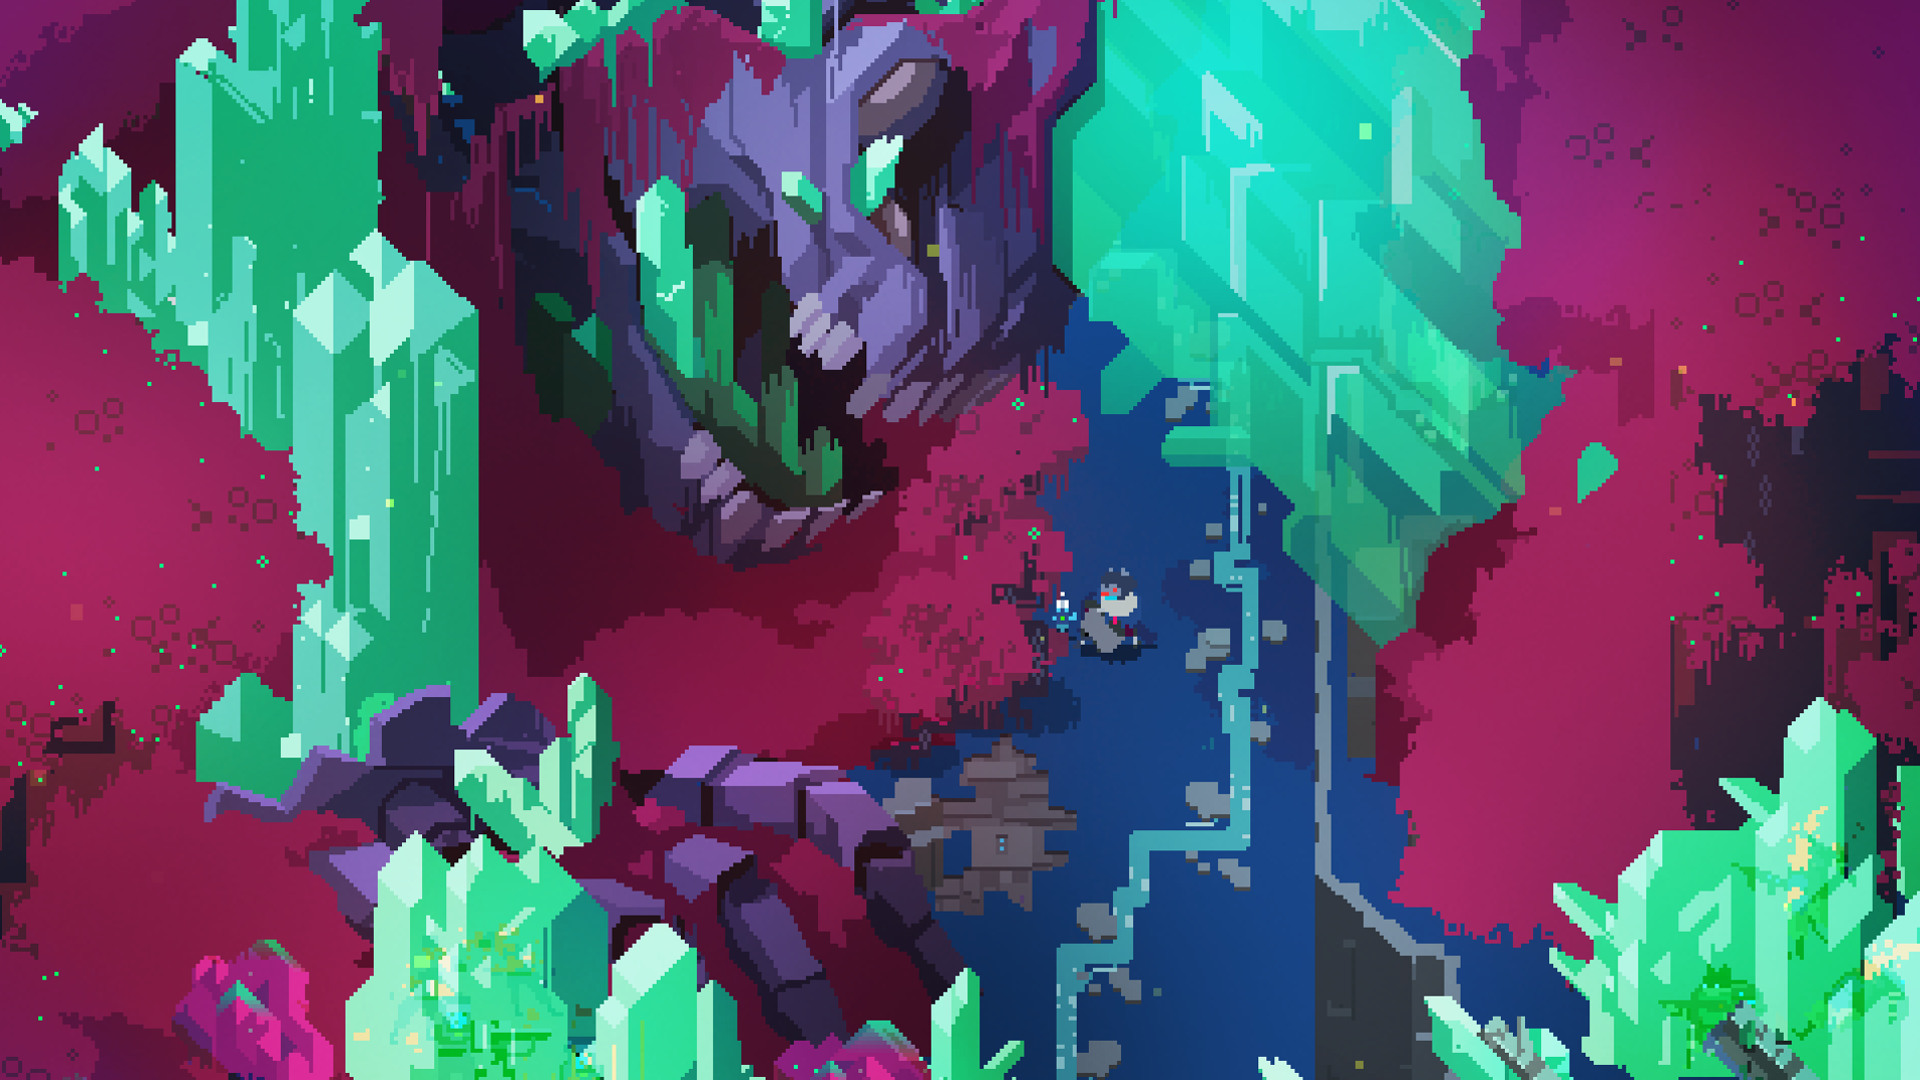 Pin By Tonid Game On Pixelart Pixel Art Hyper Light Drifter Wallpaper Wallpaper Backgrounds